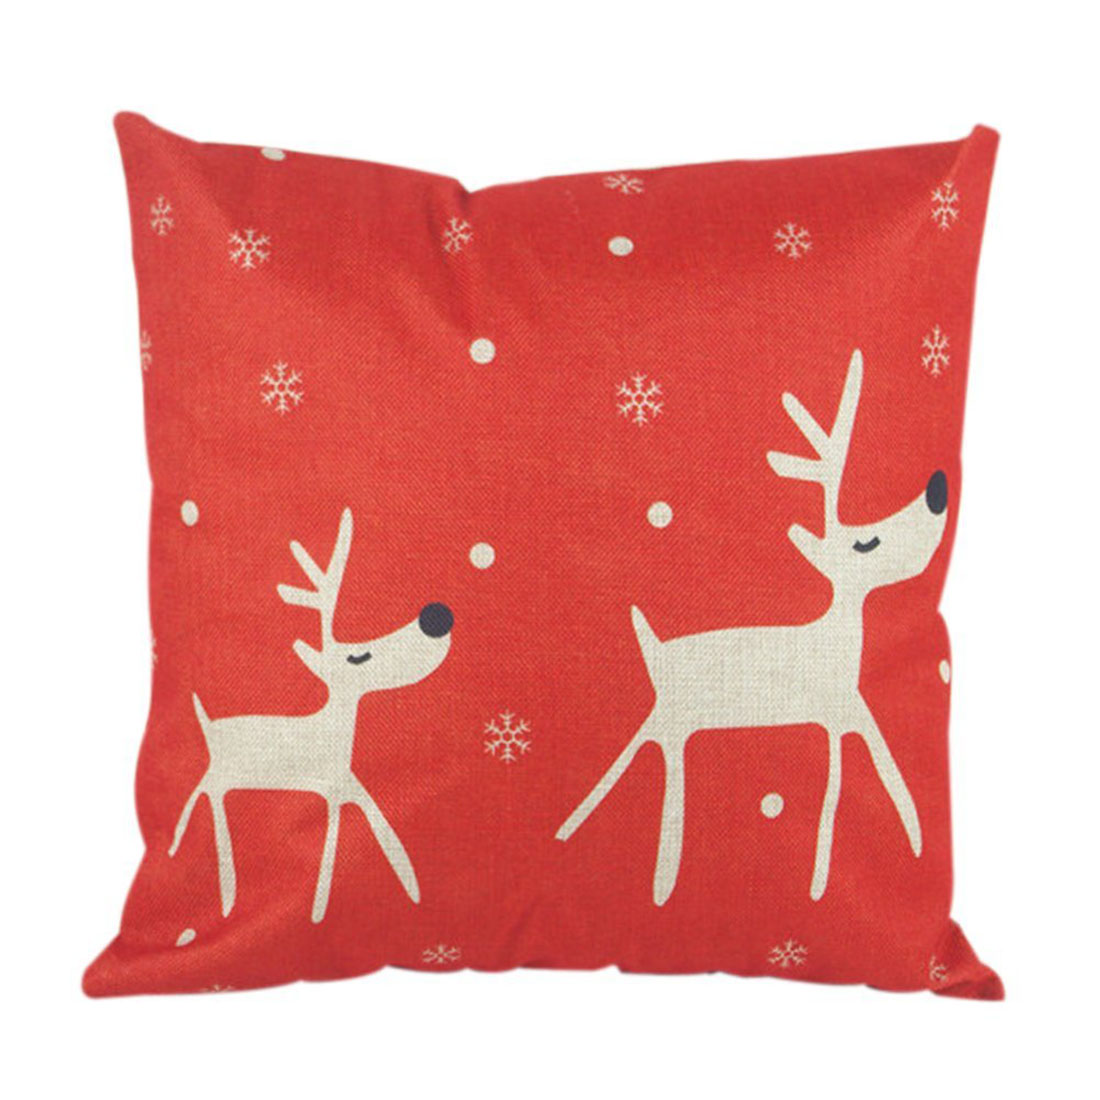 Christmas flax waterproof sweat Interior decor Body pillow cover 45 x 45 cm (red elk) ...